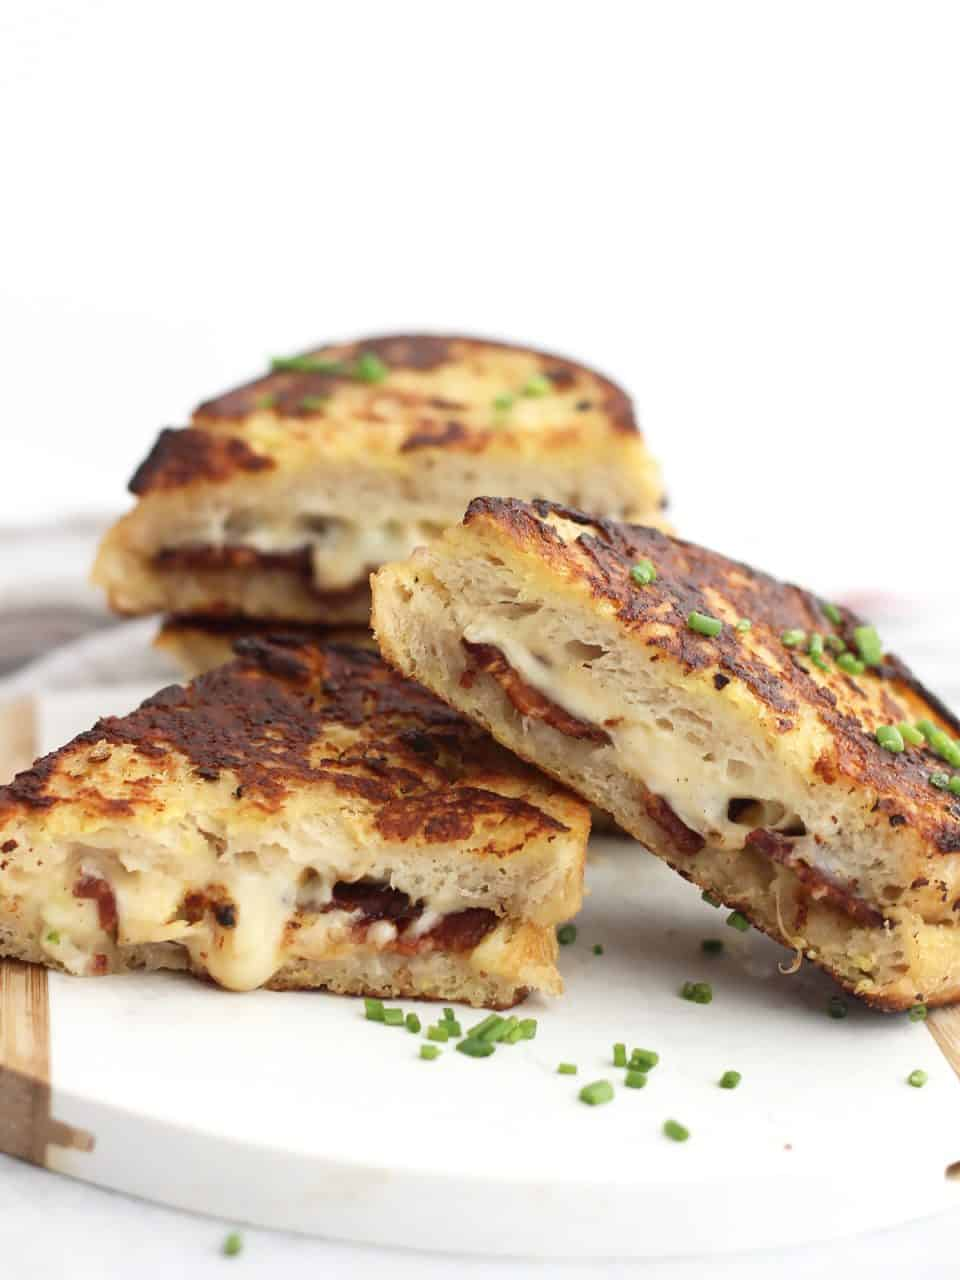 Bacon and cheese French toast cut in half and stacked on top of each other.